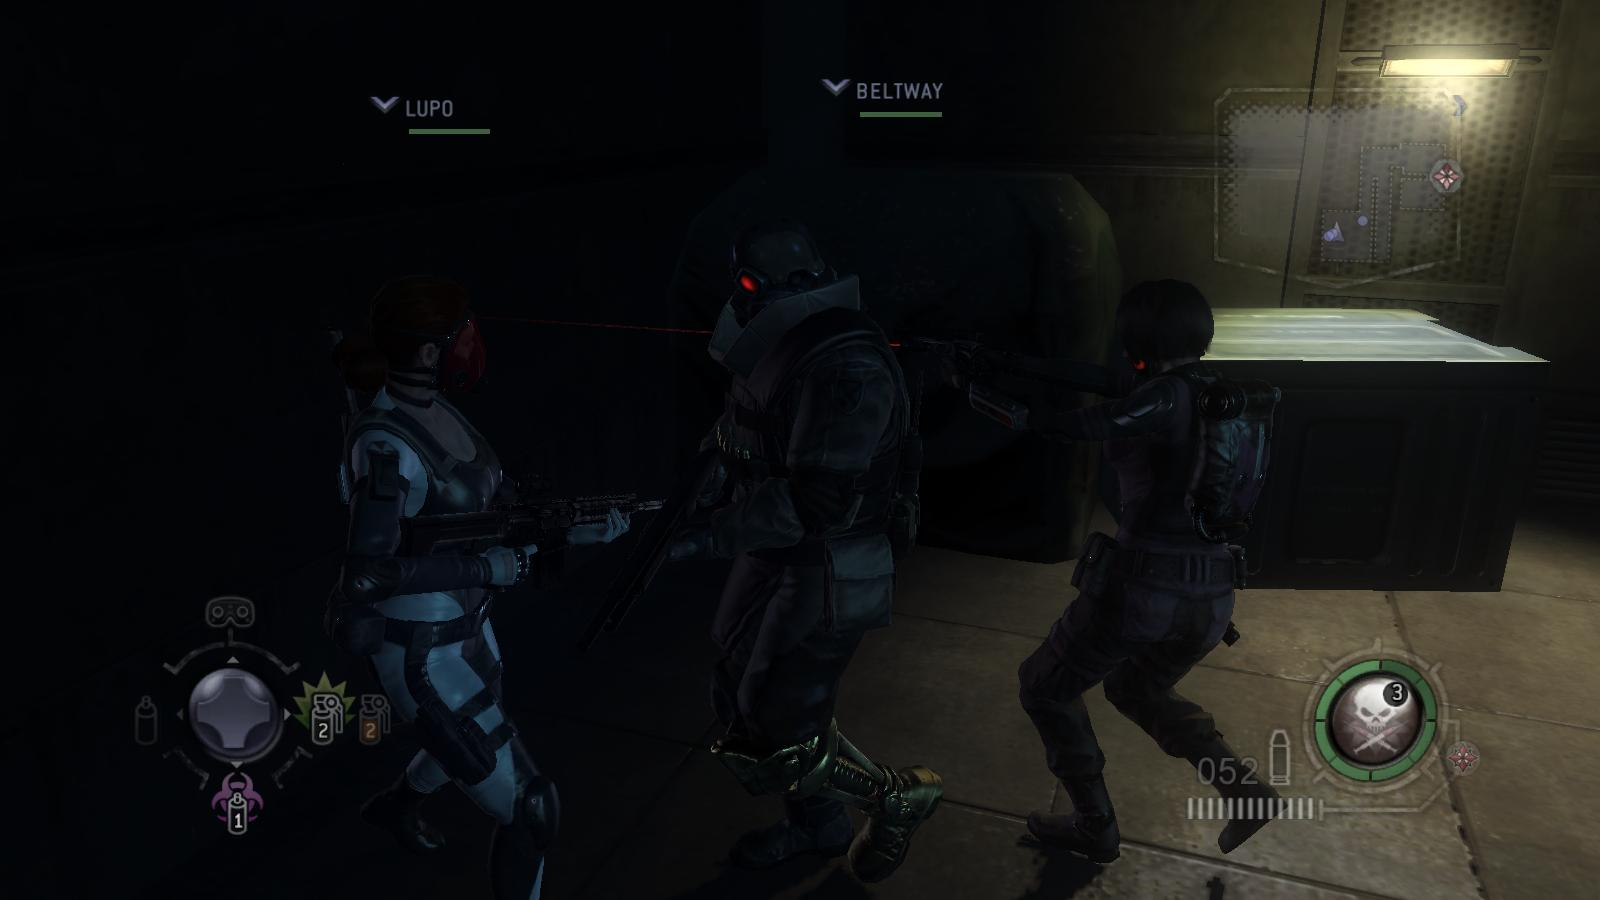 Resident evil operation raccoon city porn lupo  erotic image